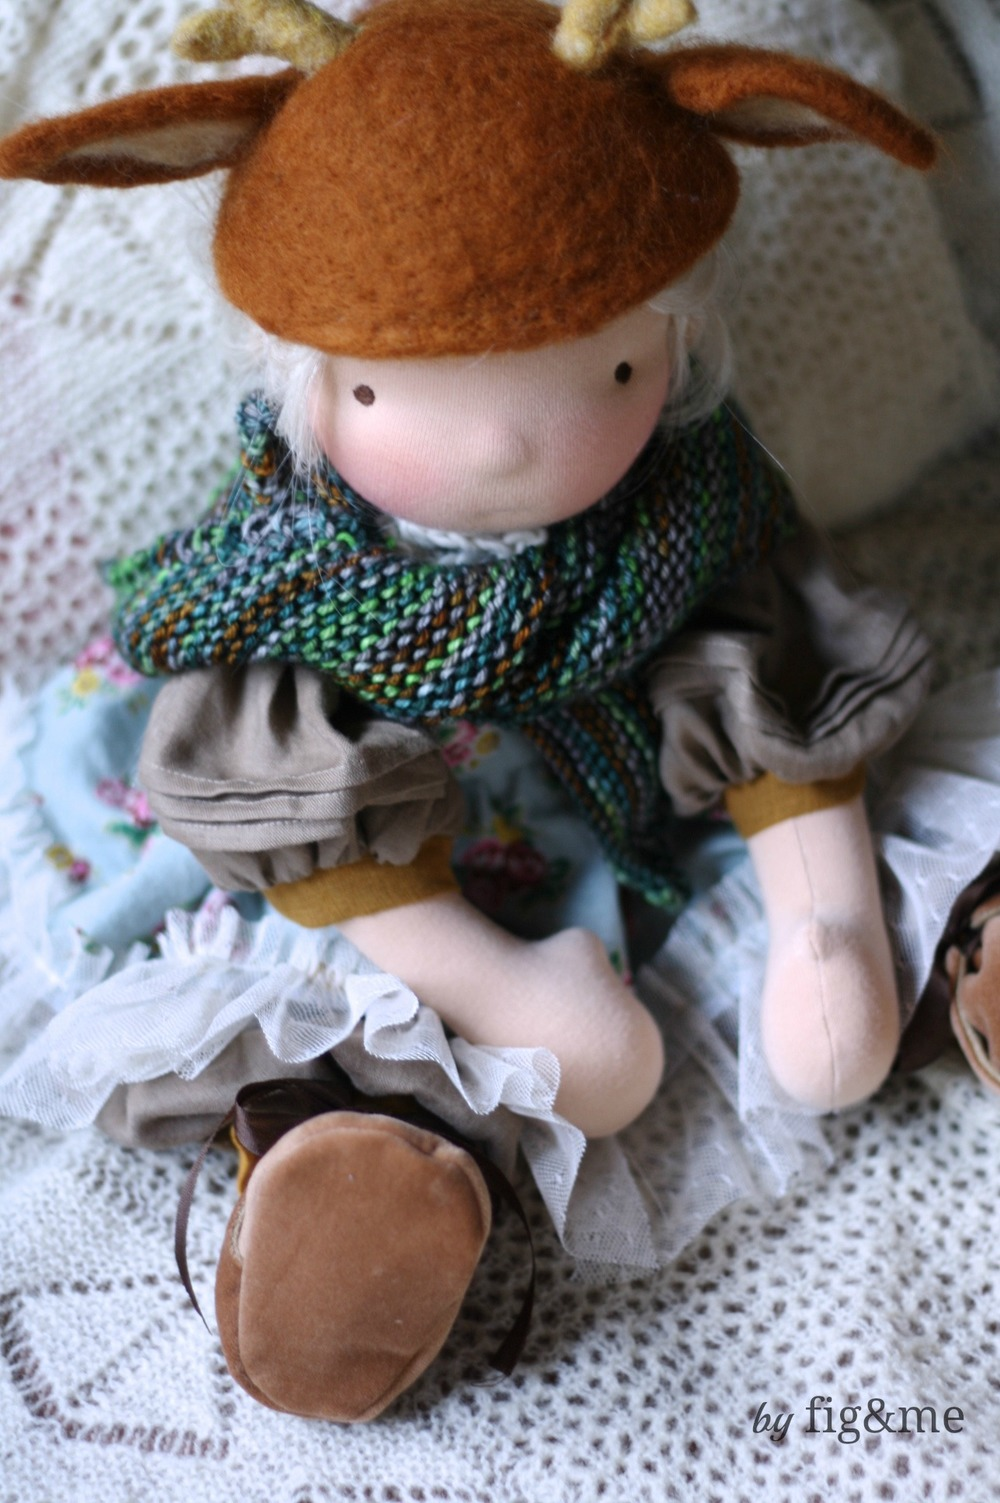 Tilly, a handmade natural doll by Fig and me.